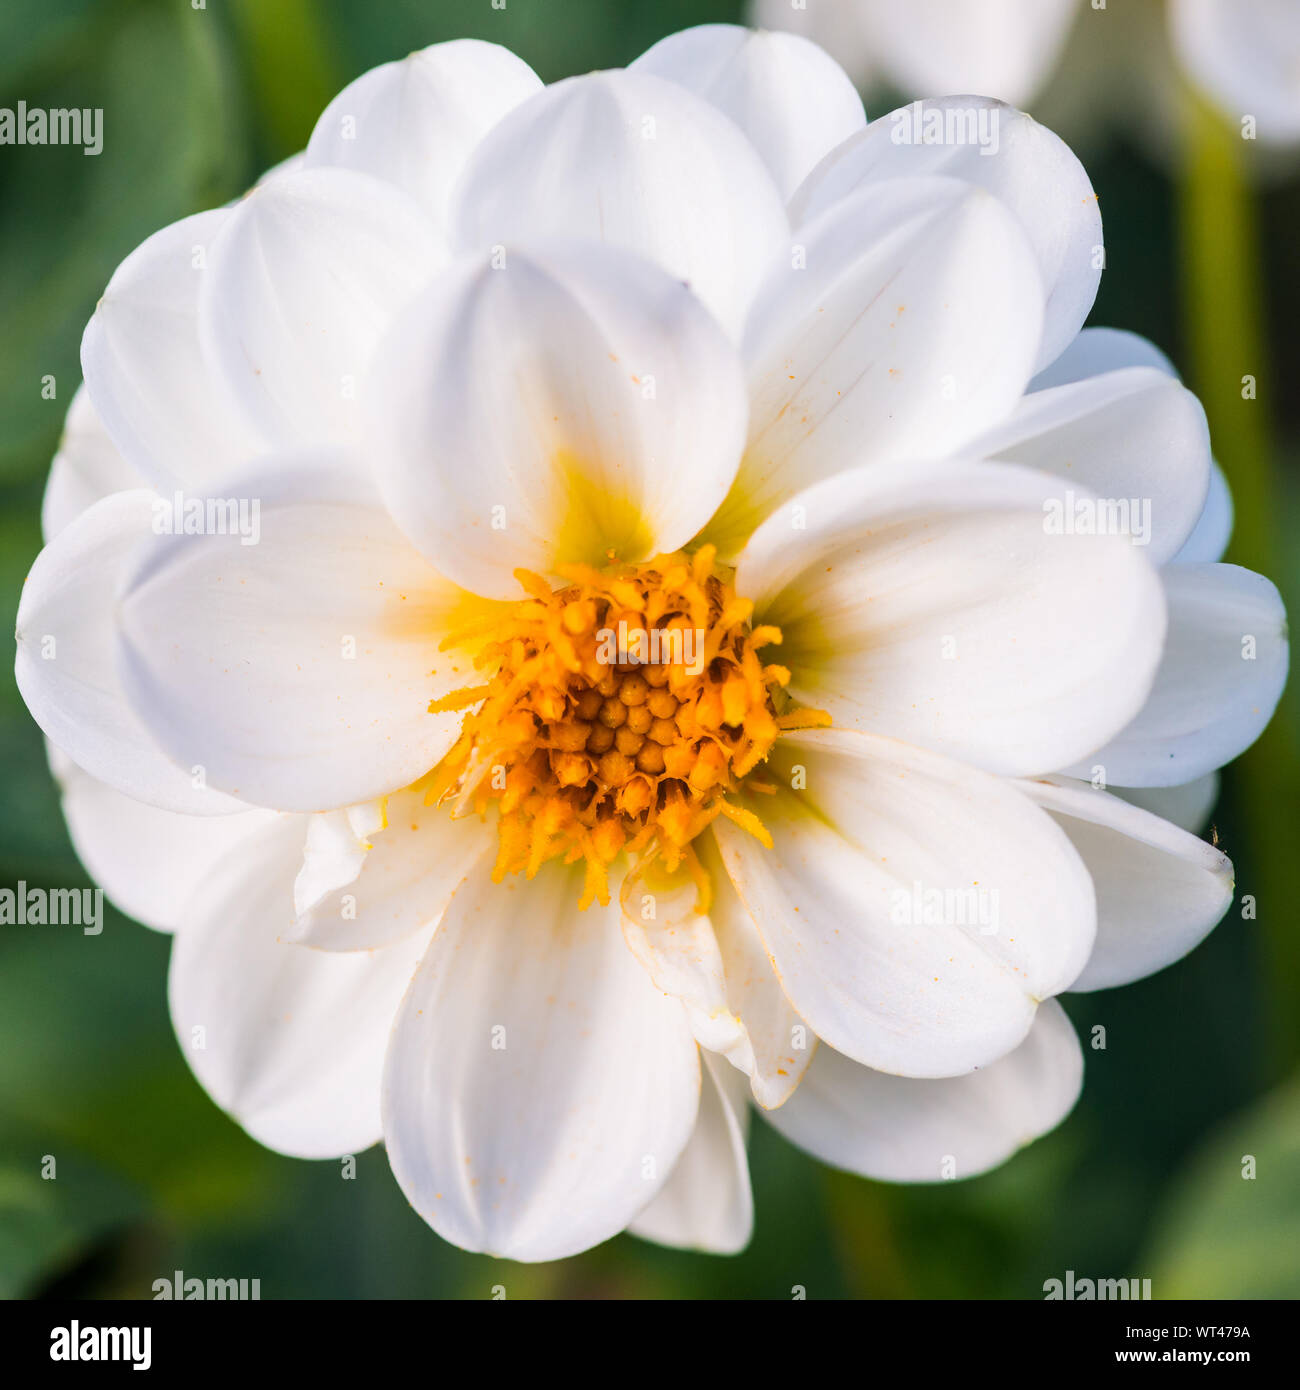 A macro shot of a white dahlia bloom with a yellow centre. Stock Photo